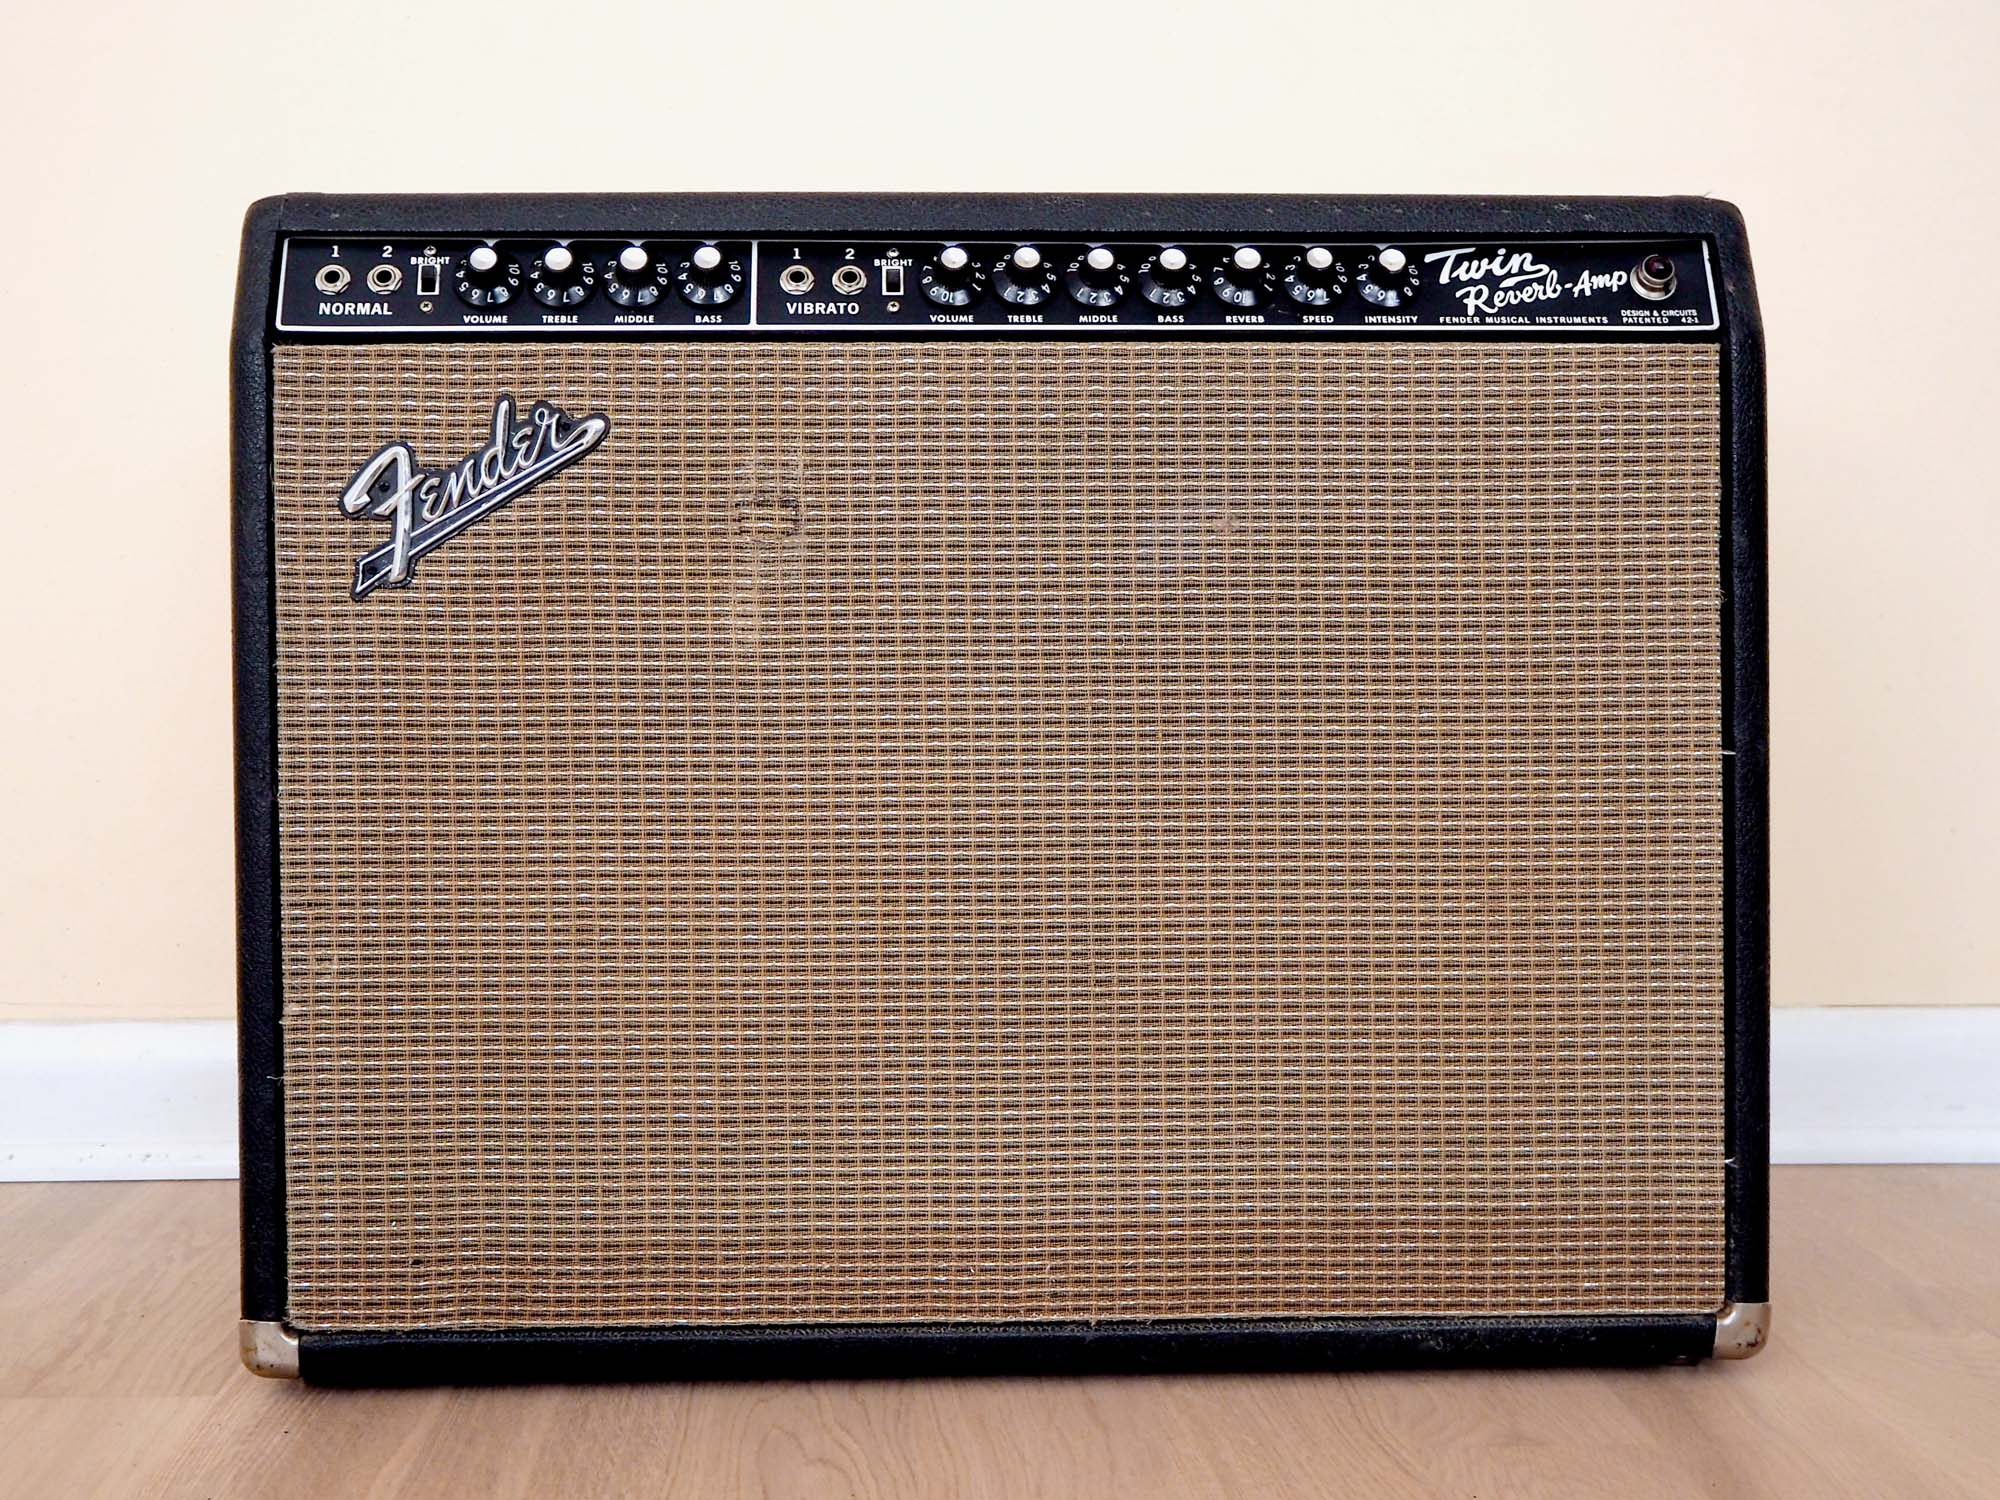 1967 Fender Twin Reverb Blackface Vintage Tube Amp 2x12 w/ Oxford 12T6 Speakers